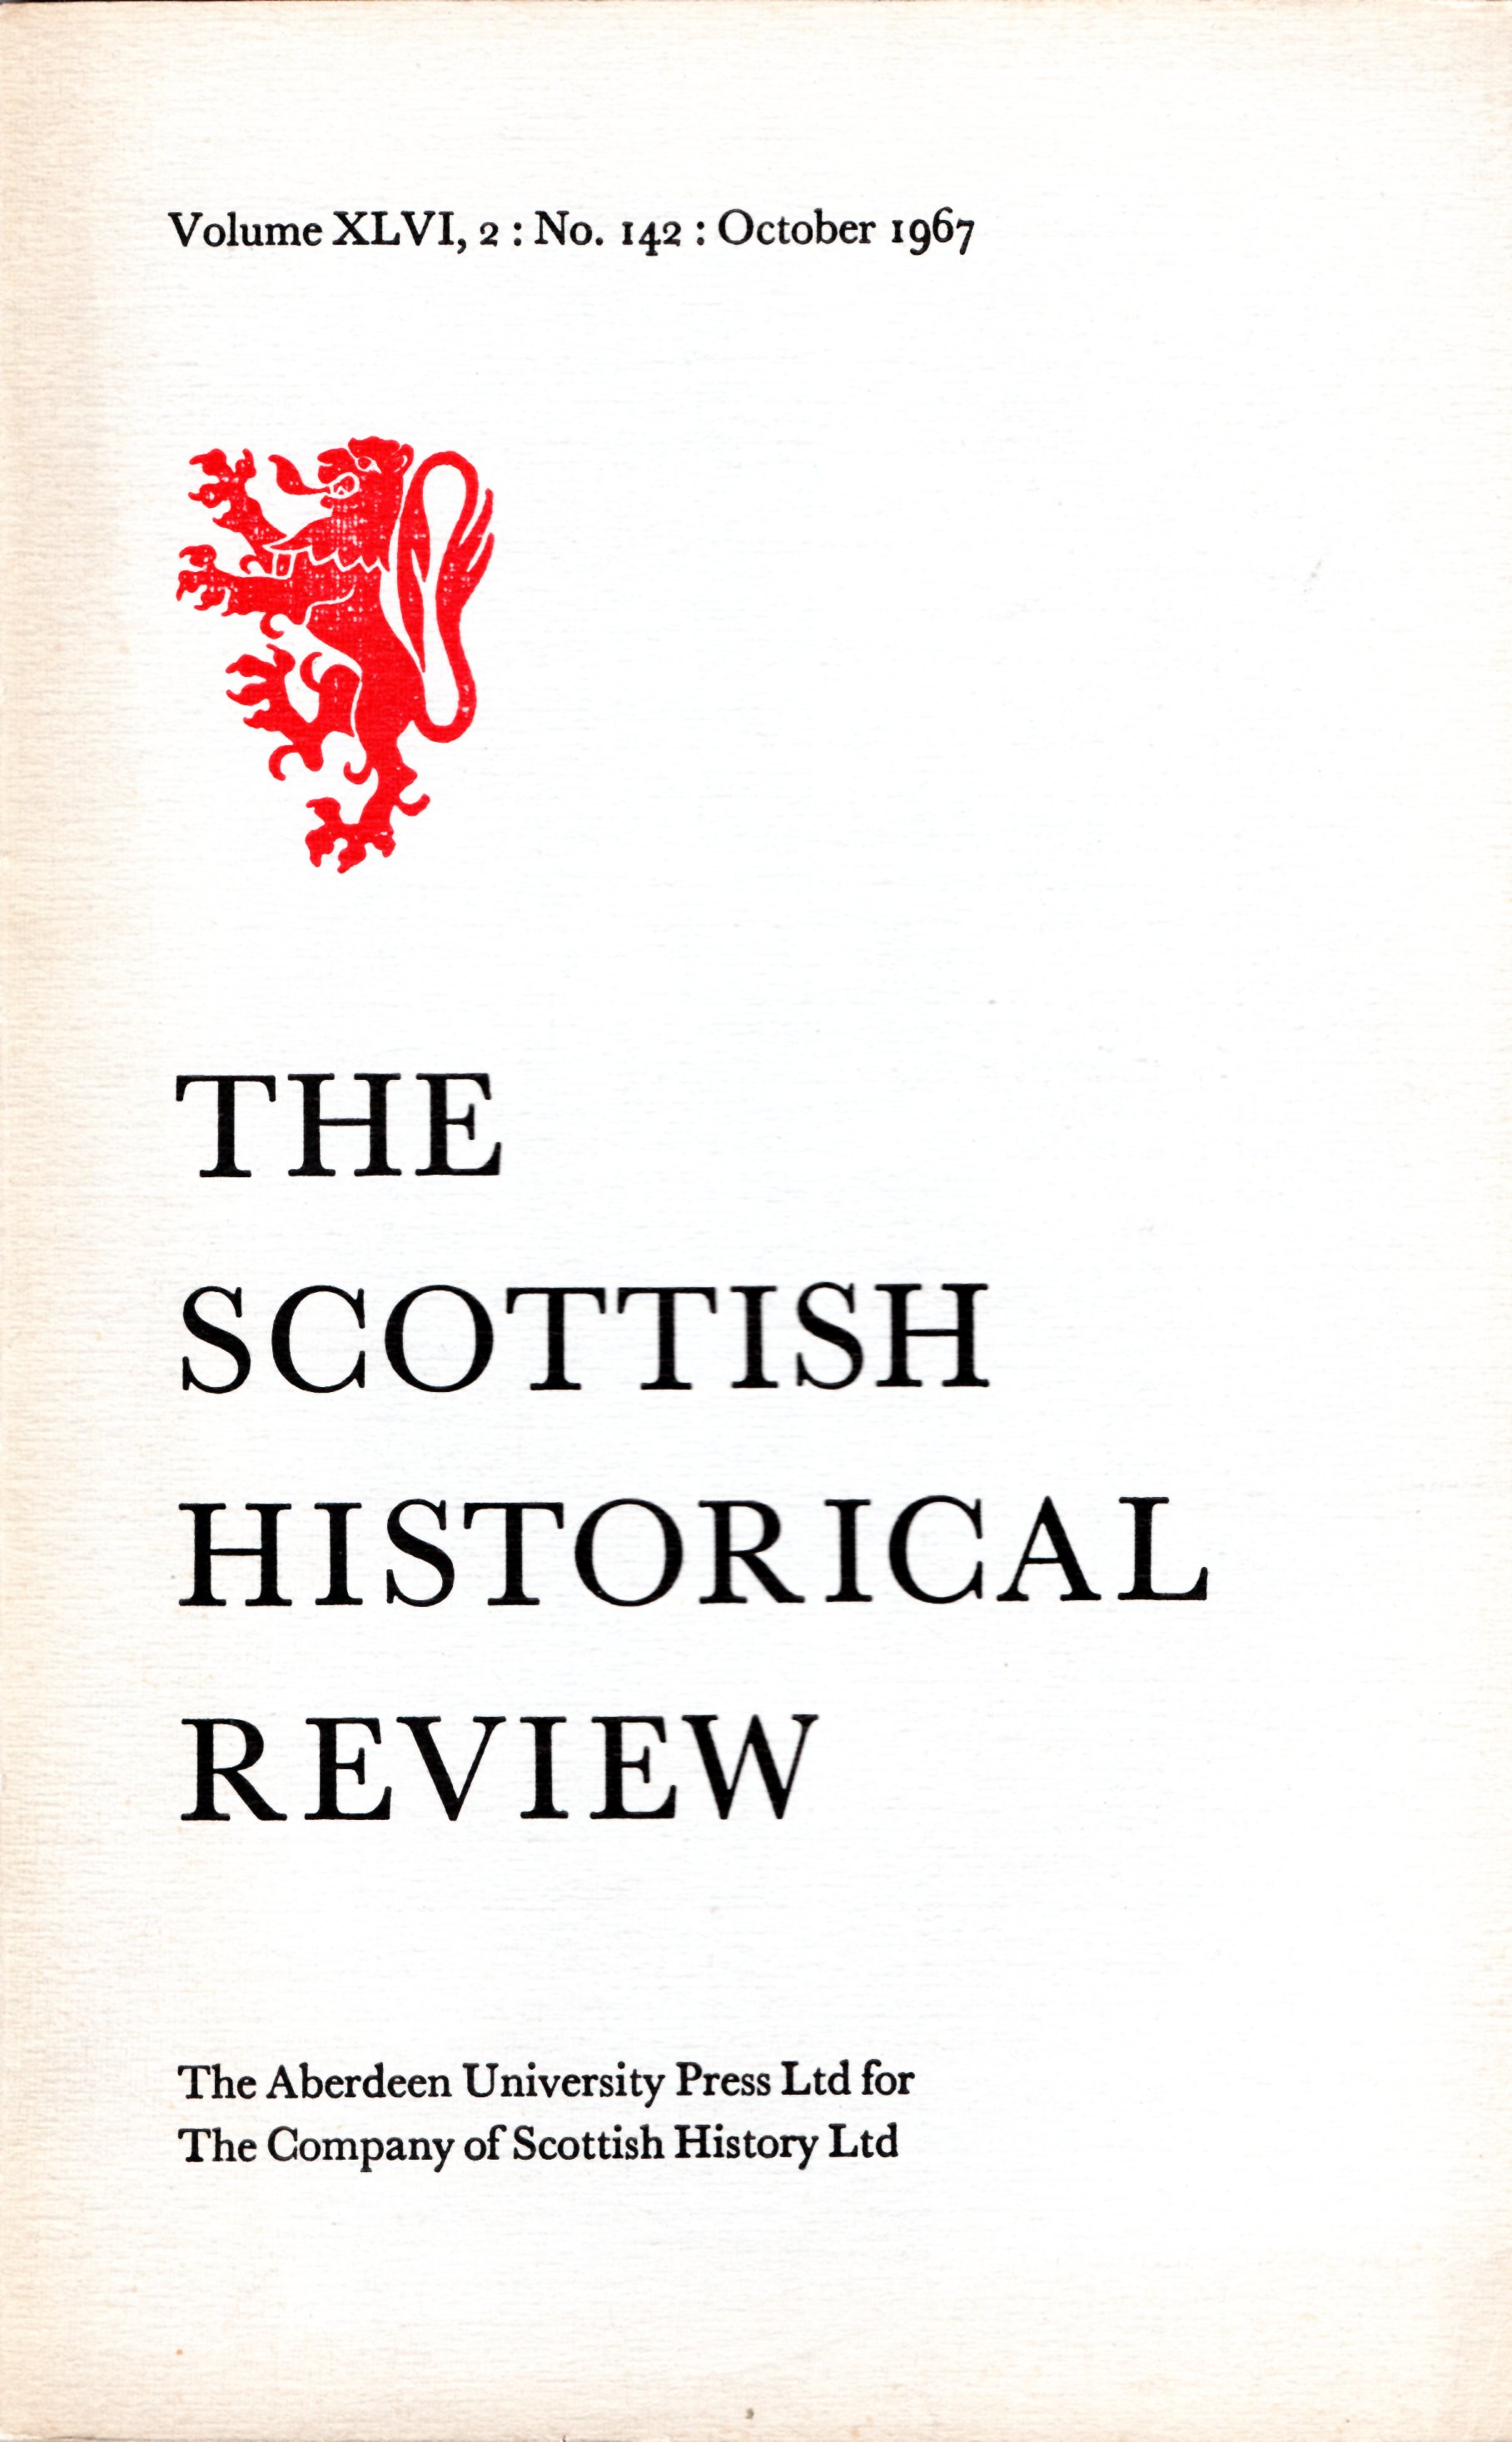 Image for The Scottish Historical Review Volume XLVI, 2: No. 142: October 1967